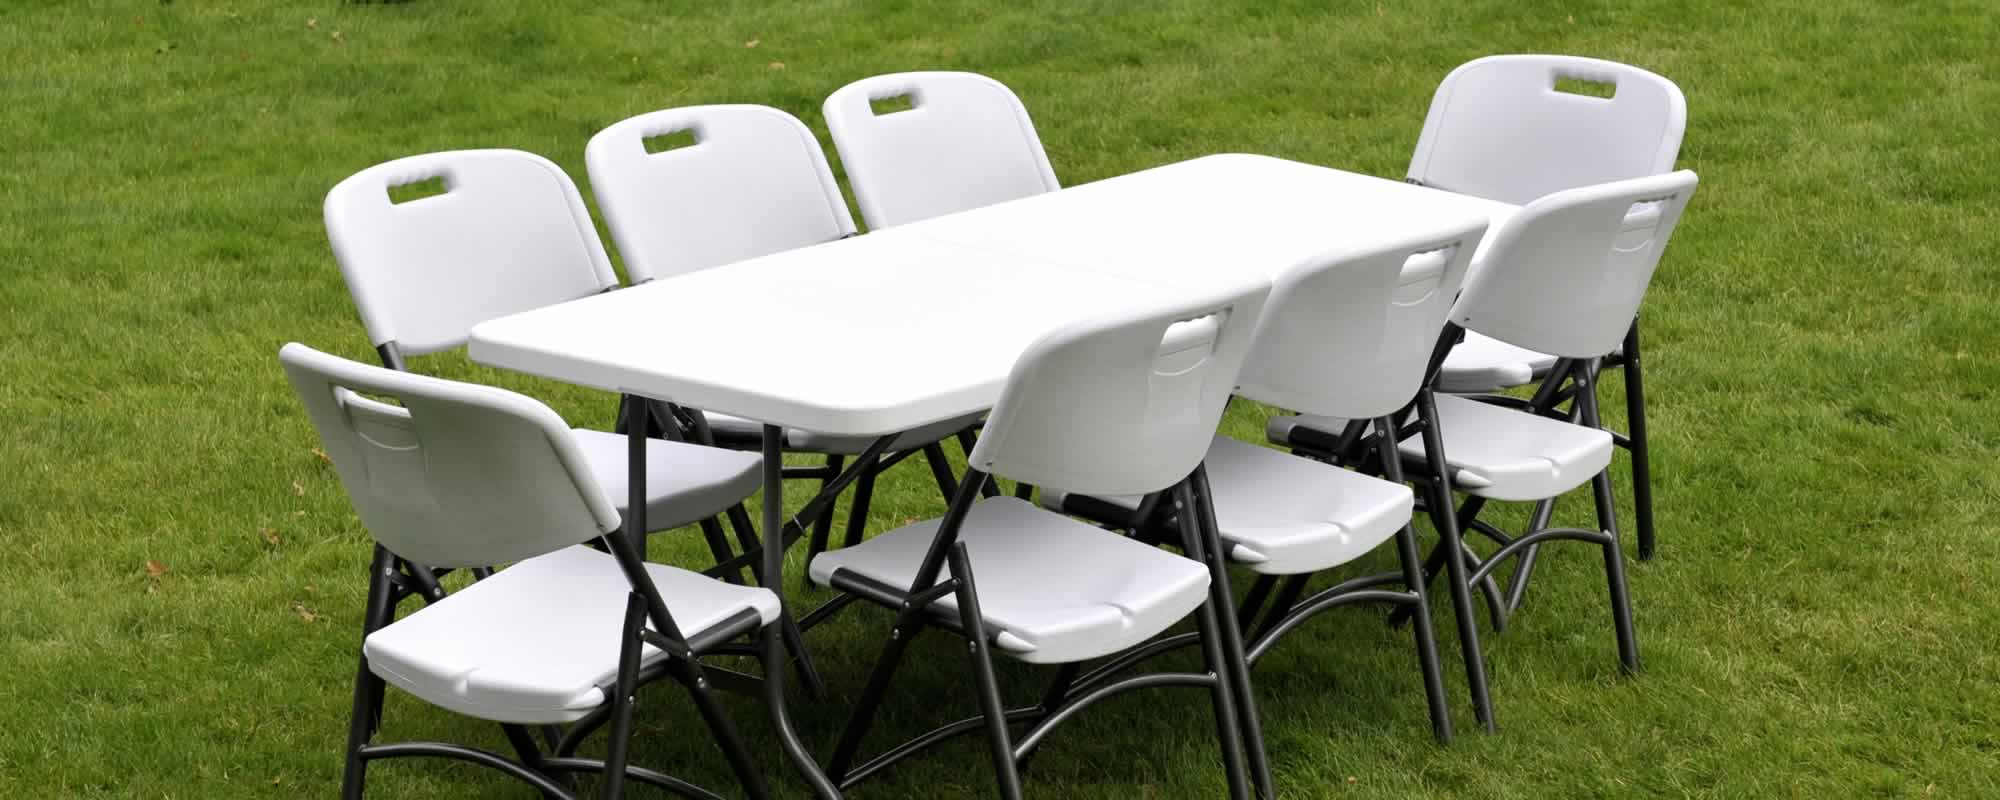 London area party tables and chair hire adult and kids sizes for Table and chairs